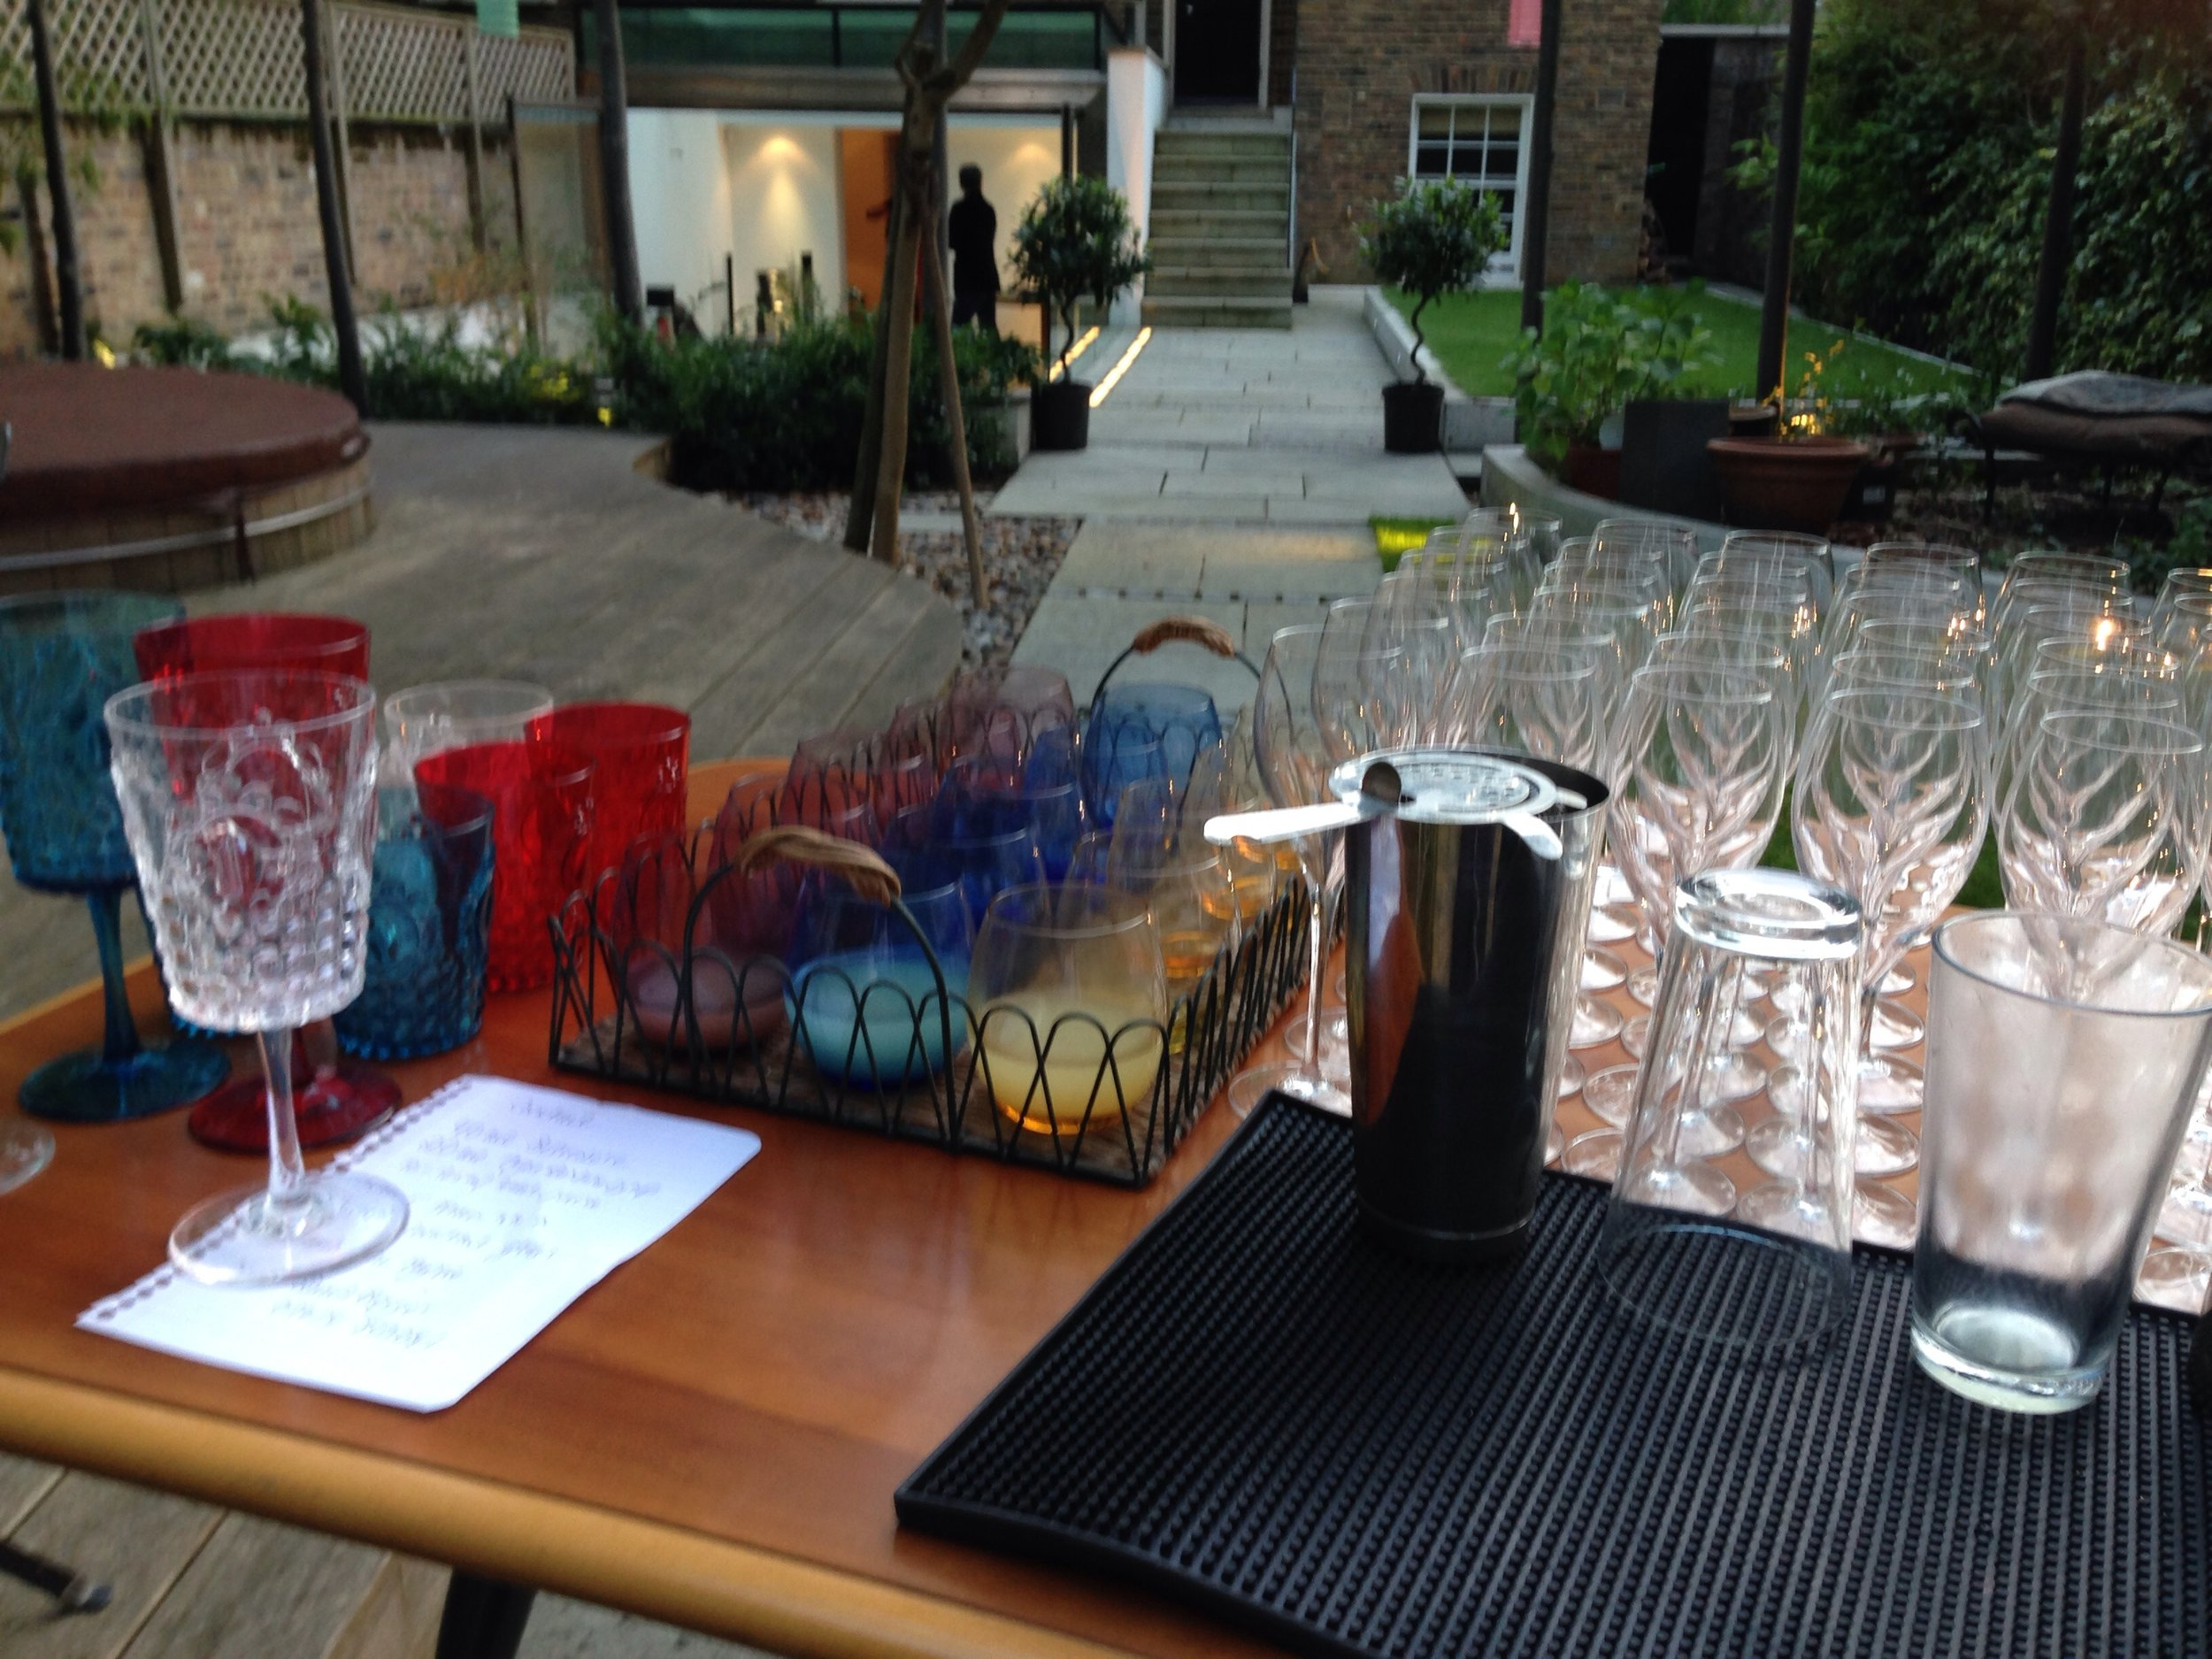 Private garden party and cocktail bar setup